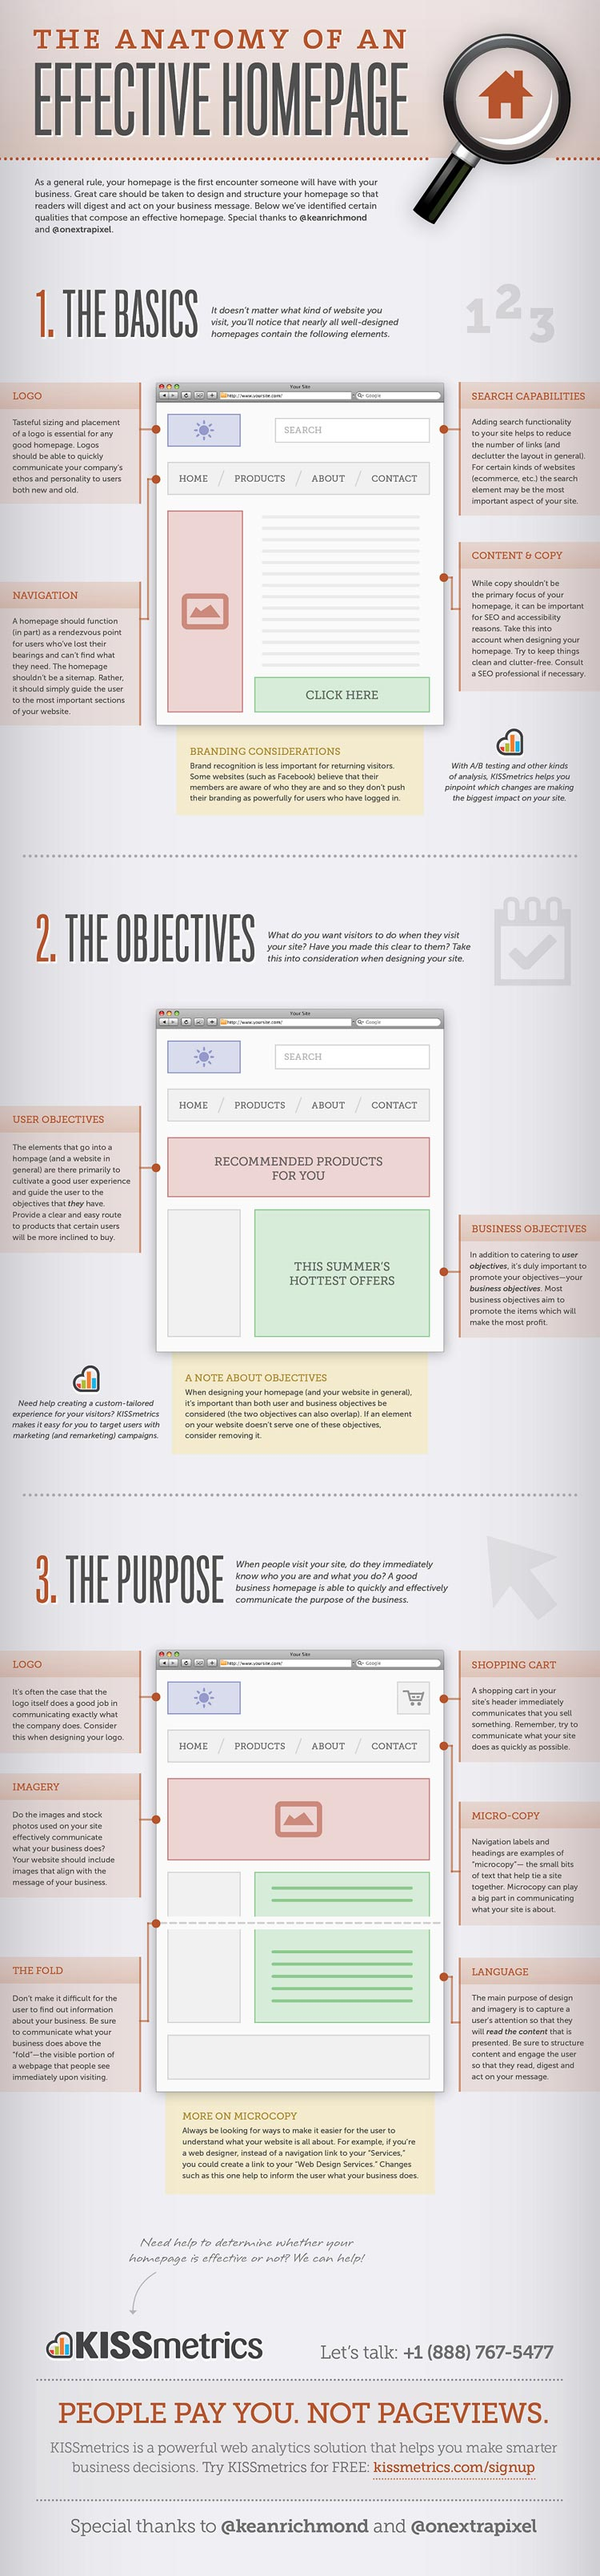 The bigger version of The Anatomy of an Effective Homepage